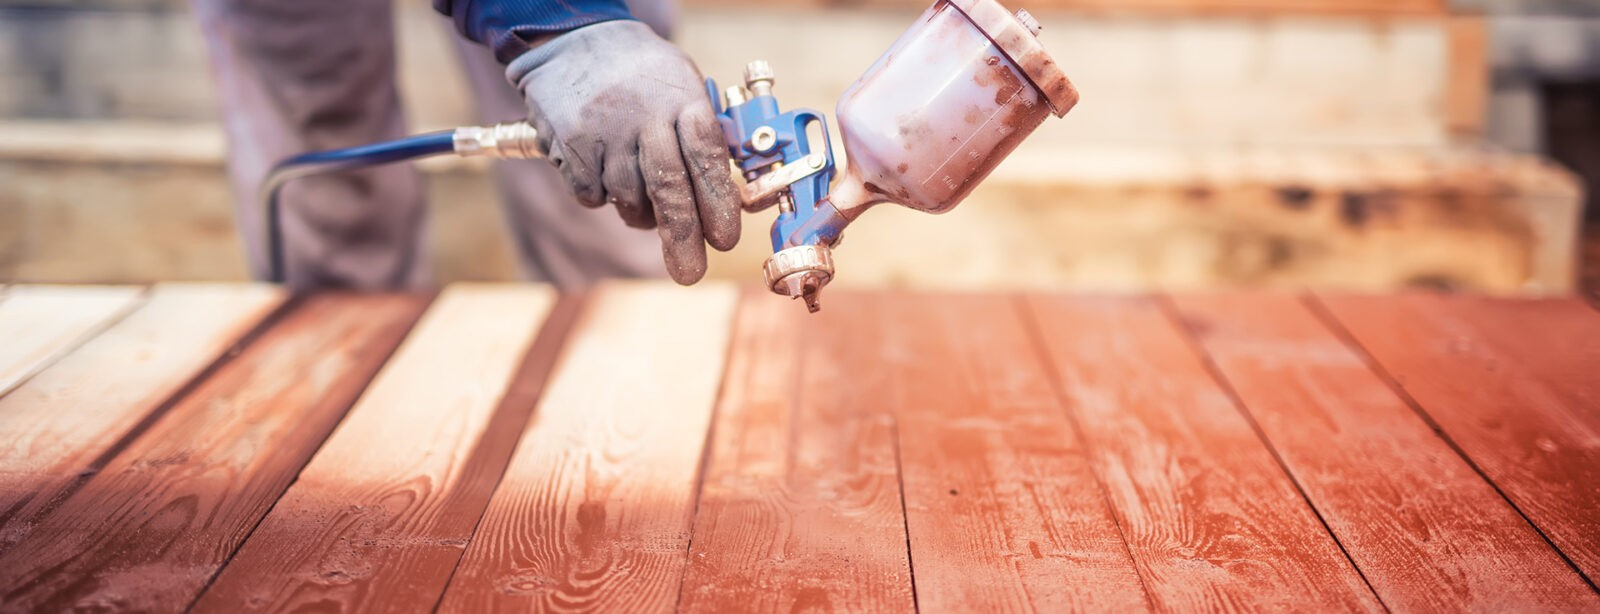 2020 How Long Does Spray Paint Take To Dry? Our opinion ...